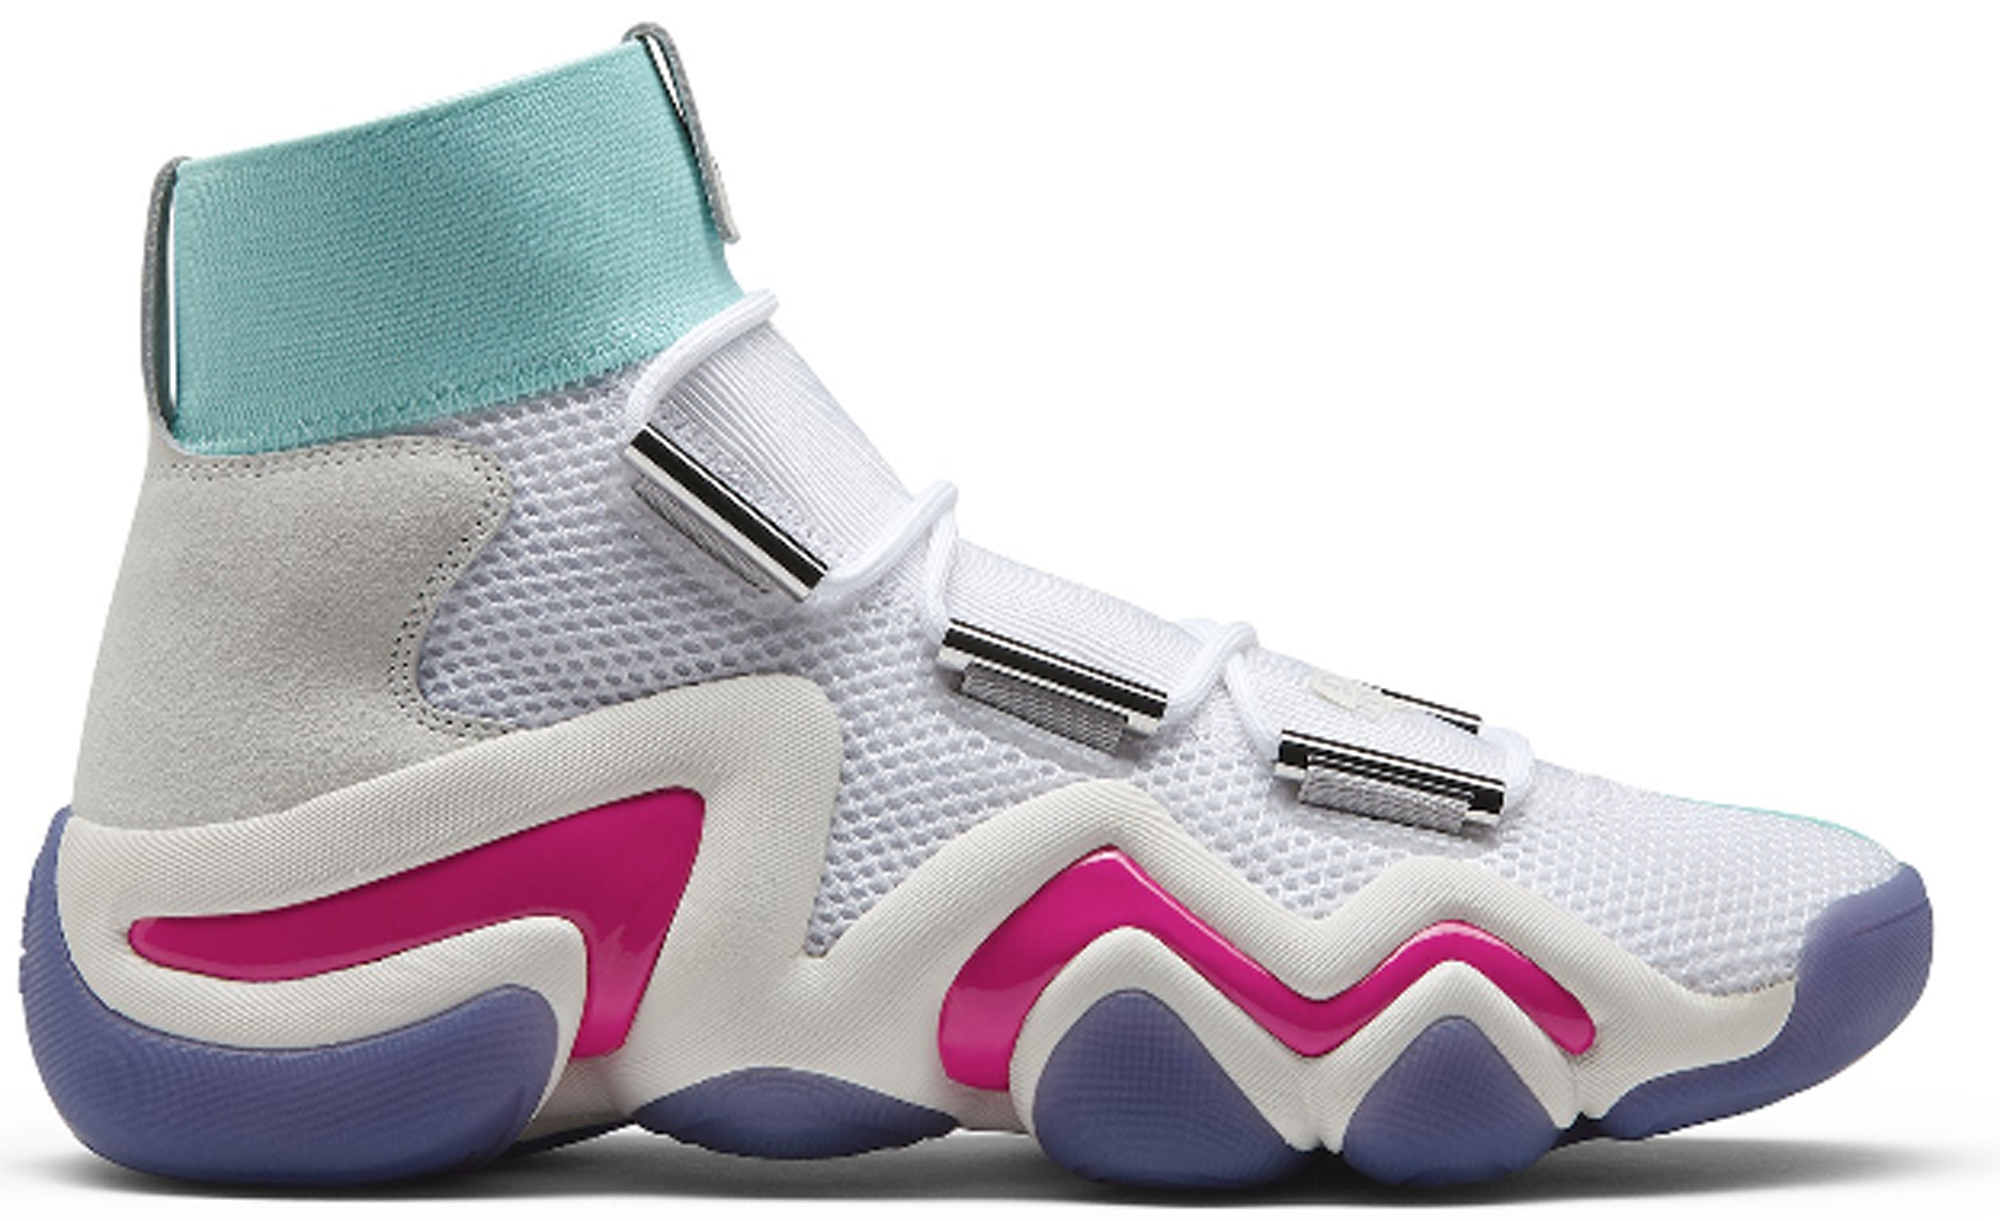 08b0795fb30 adidas Crazy 8 ADV Nice Kicks - DB1788